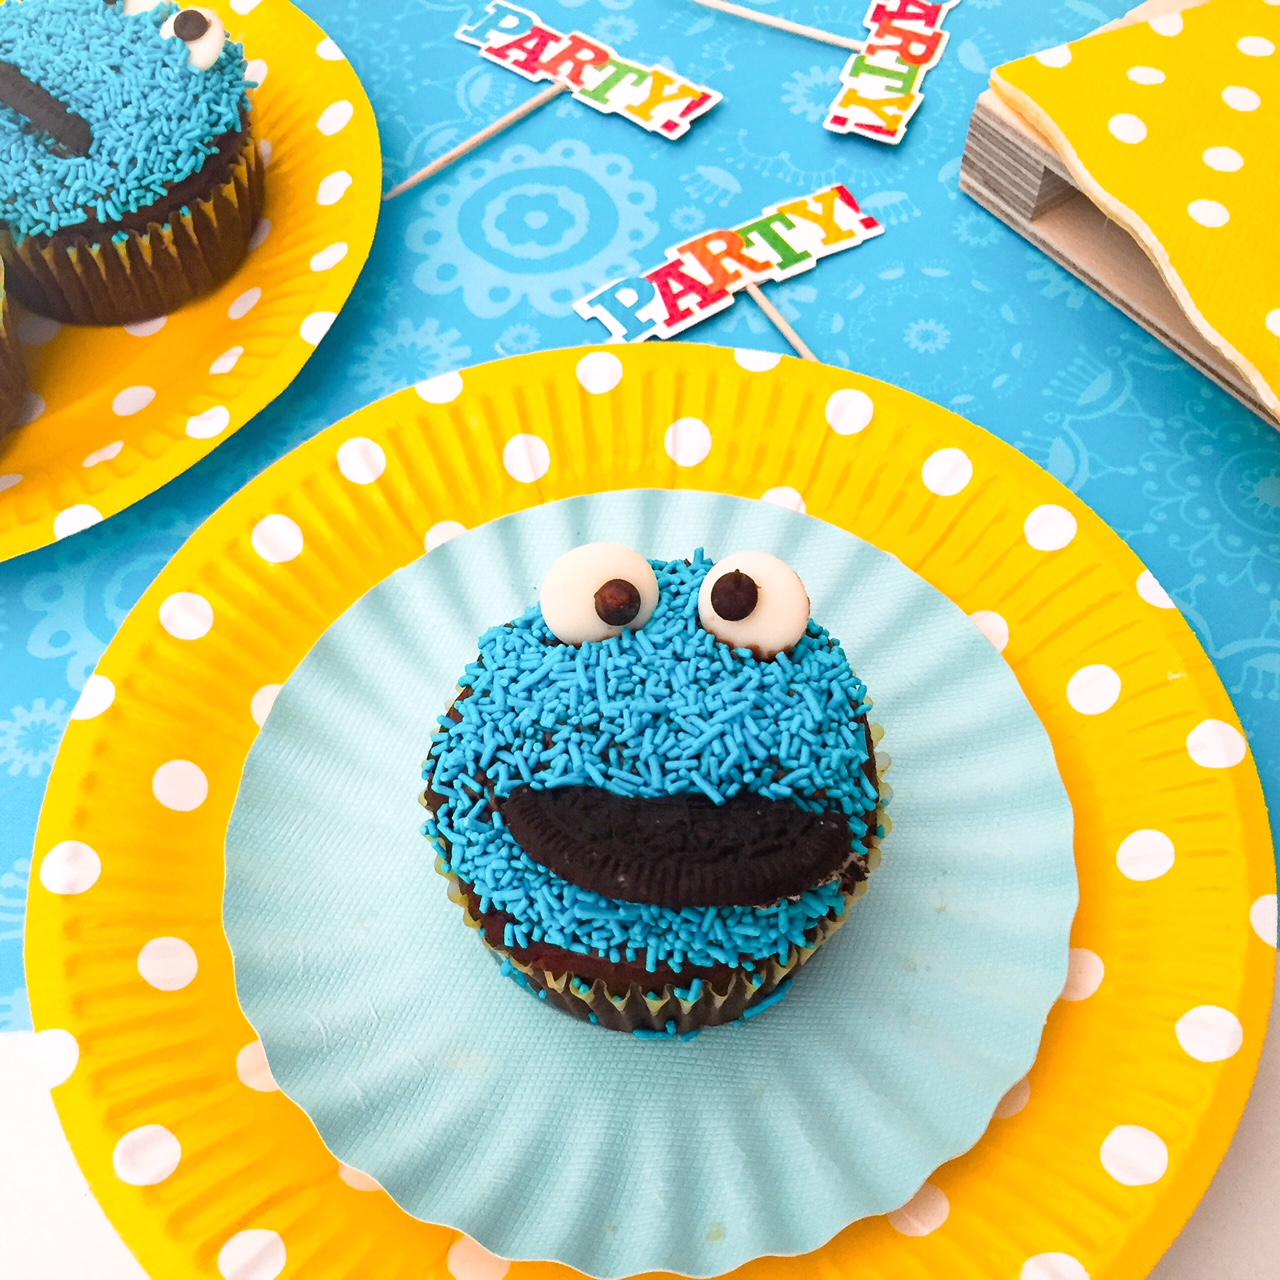 Cookie Monster cupacke singolo